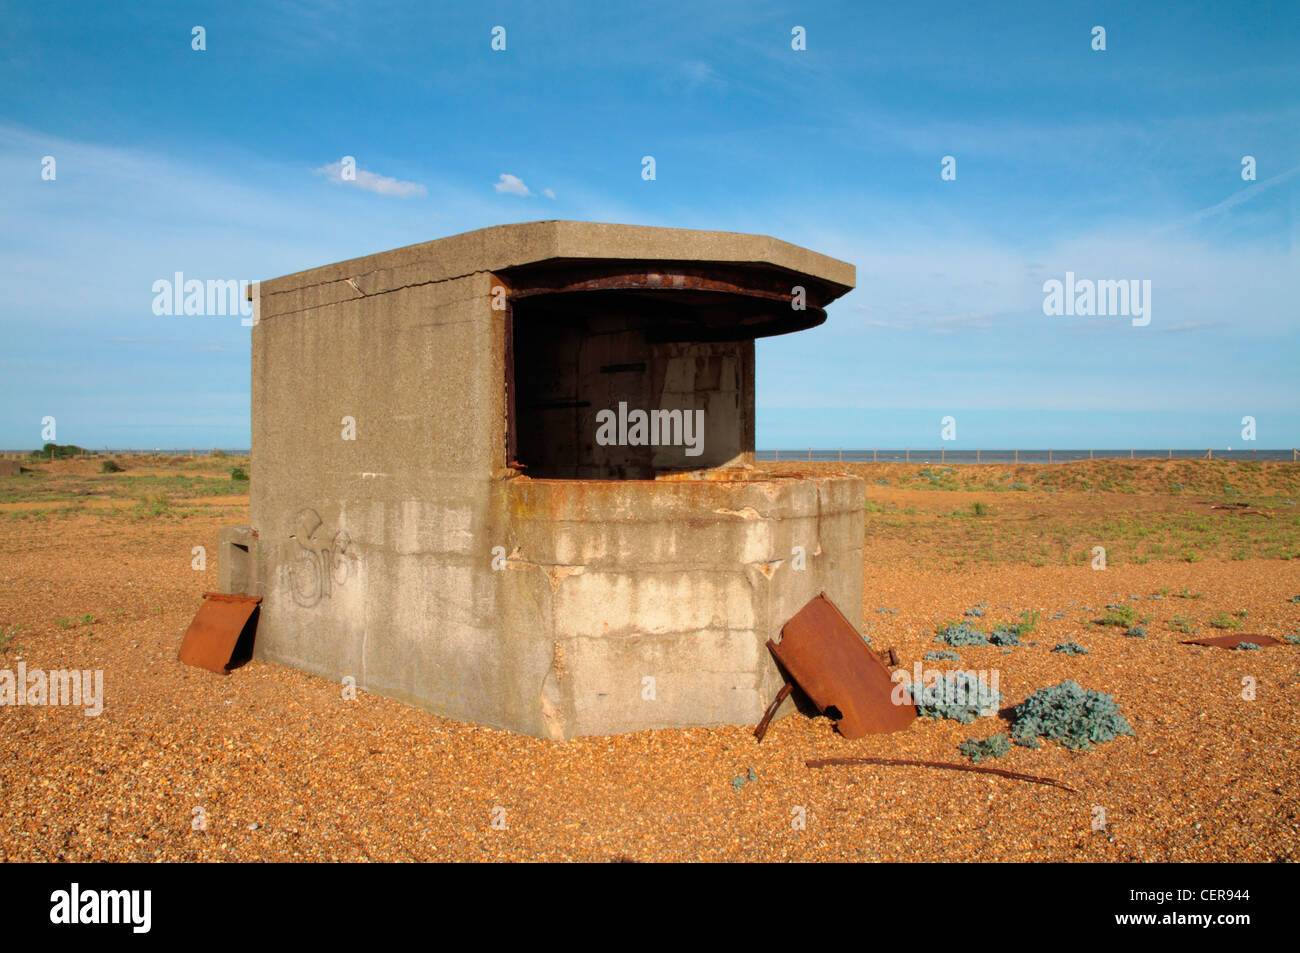 A derelict world war two pillbox on the beach at Landguard Point, the most southerly part of Suffolk. - Stock Image